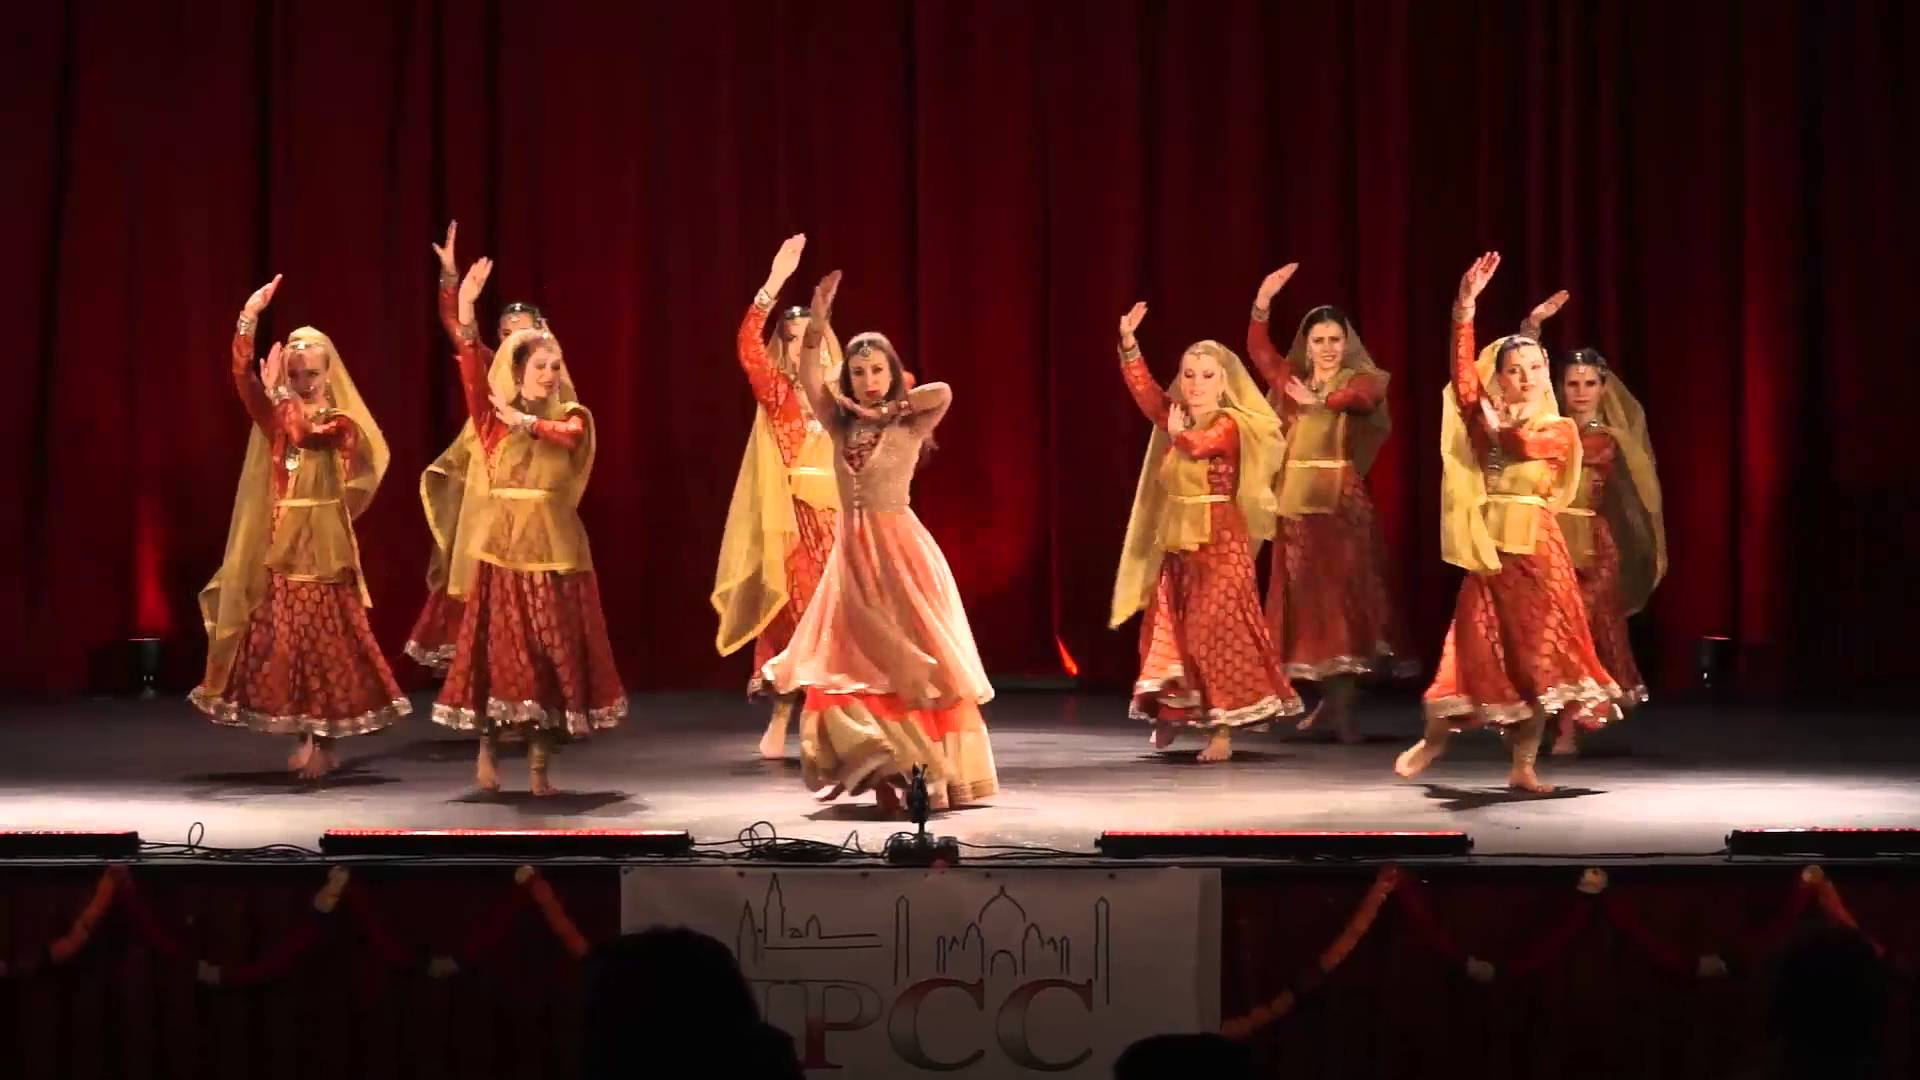 Divani Me Diwani Song Download Deewani Mastani Choreography By Mohini Dance Group